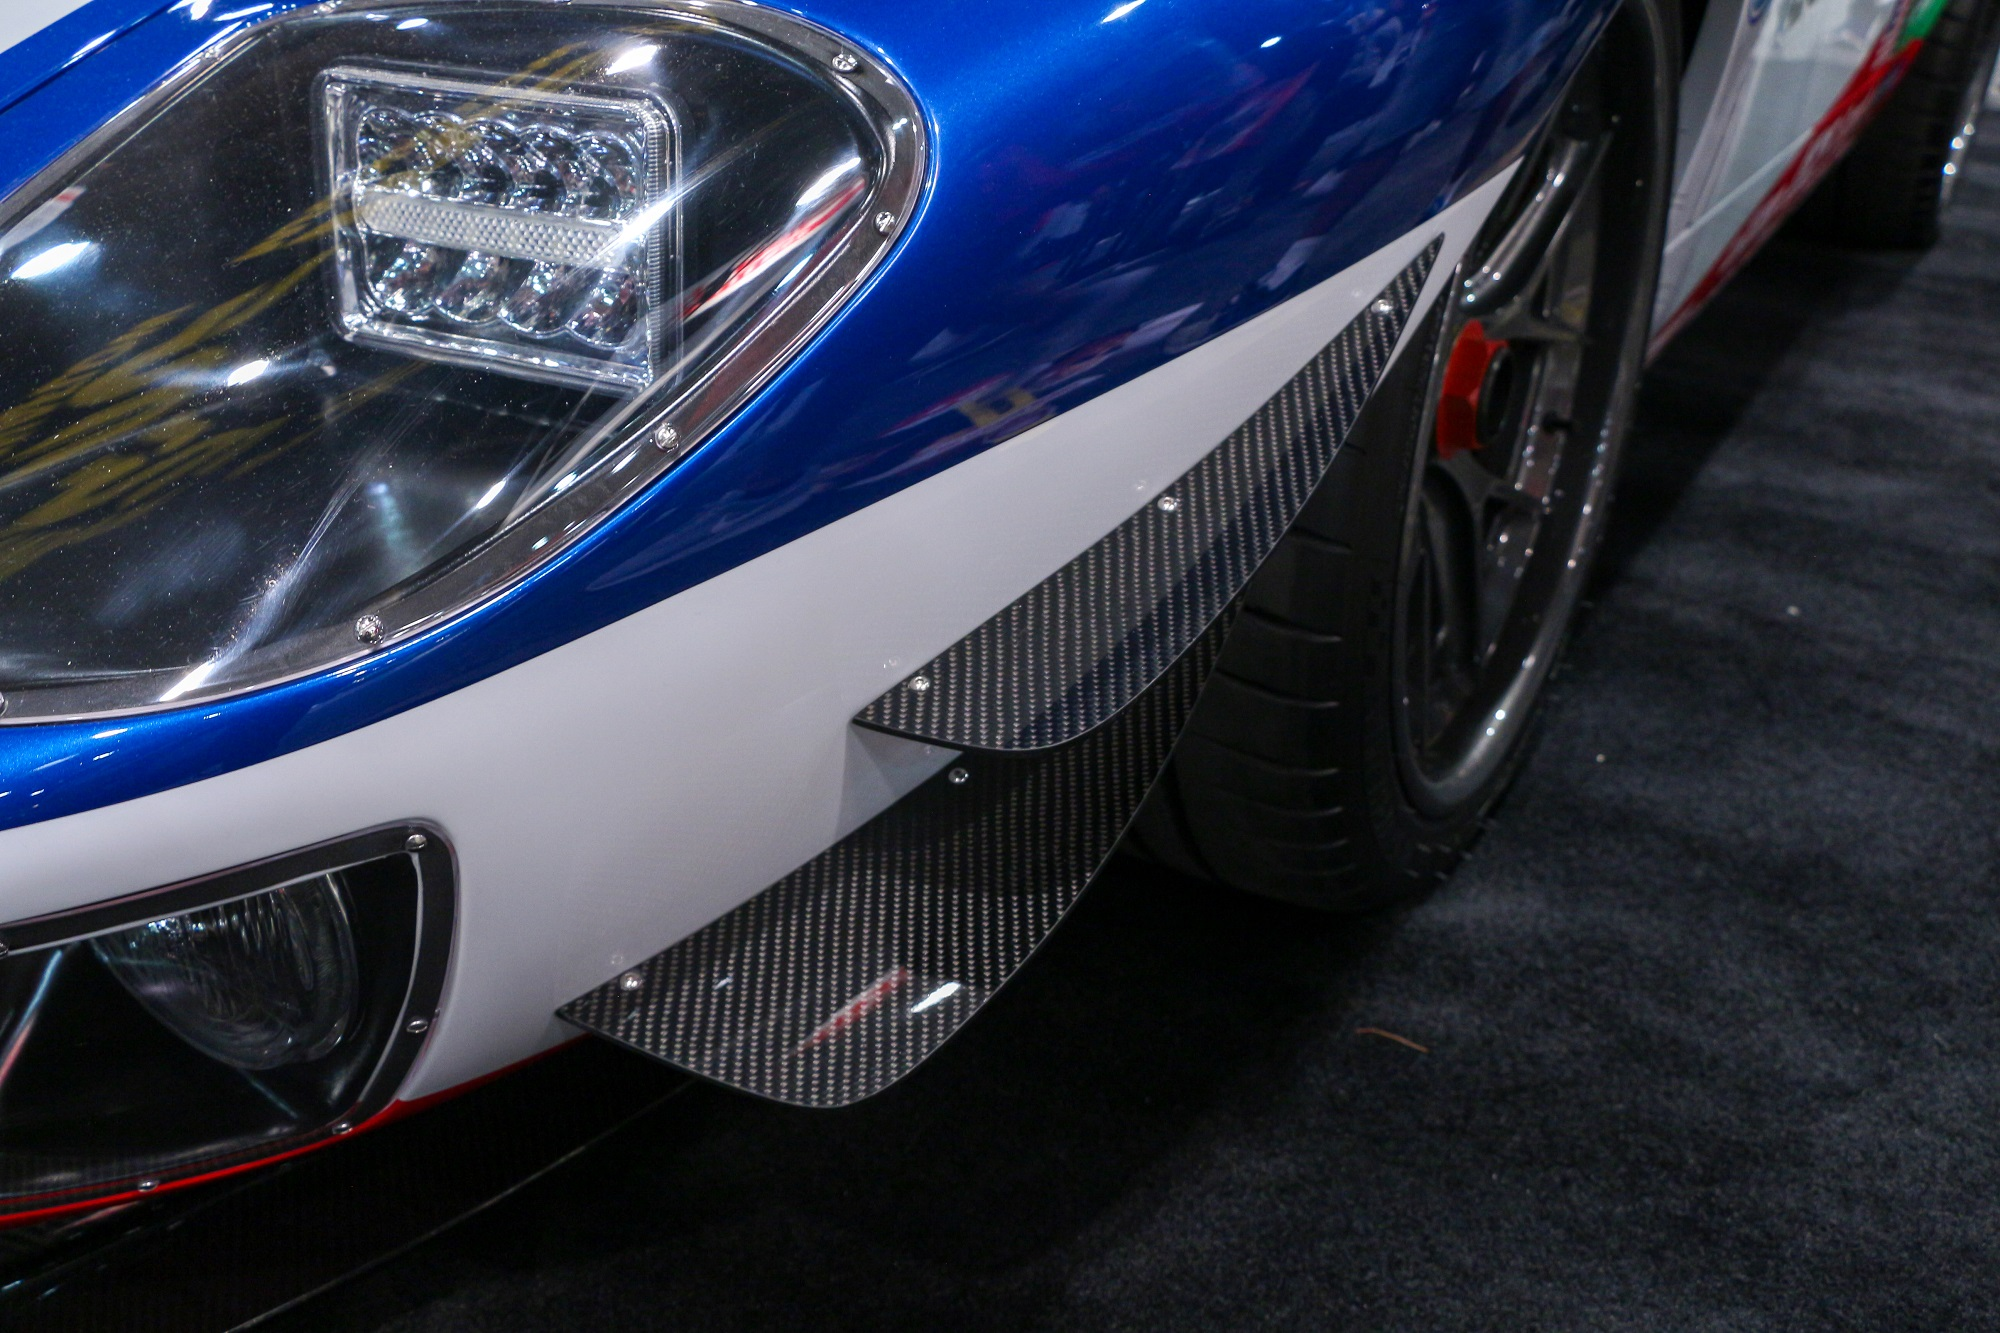 Superformance Future GT Forty GT40 1968 Le Mans Victory Ford GT 6SpeedOnline.com